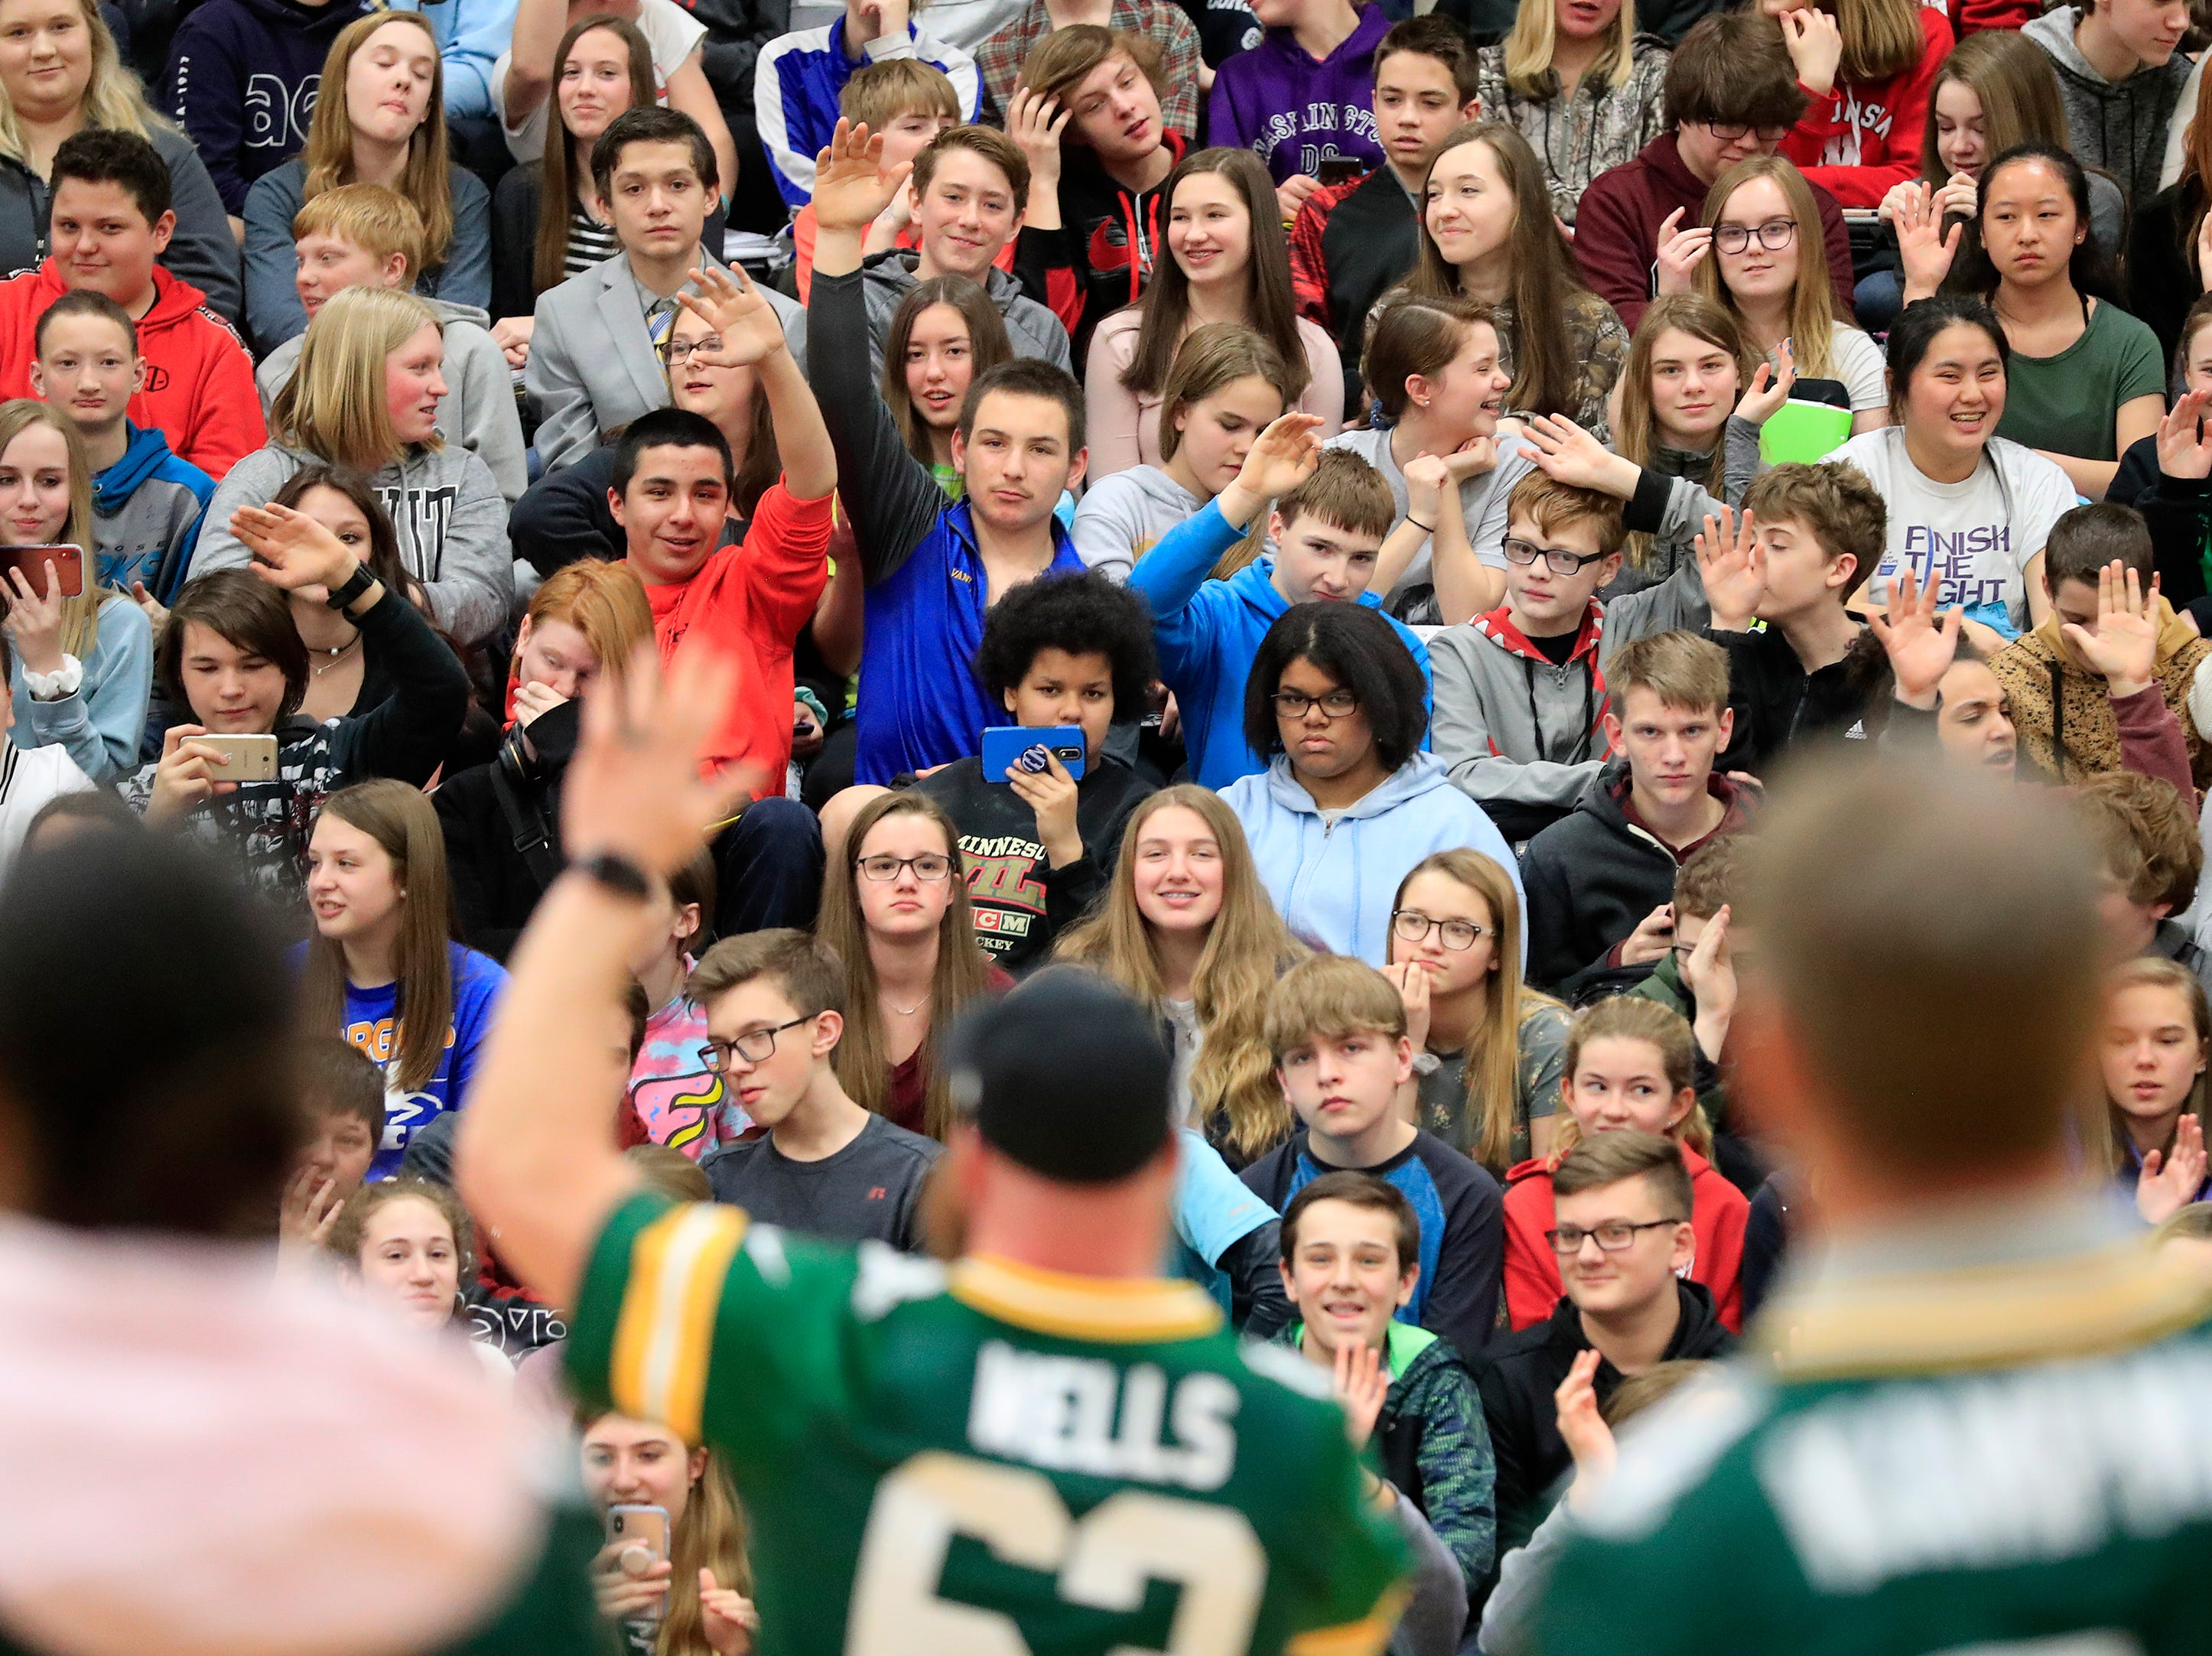 Students raise their hands during a stop on the Packers Tailgate Tour at Ben Franklin Junior High School on Tuesday, April 9, 2019 in Stevens Point, Wis.